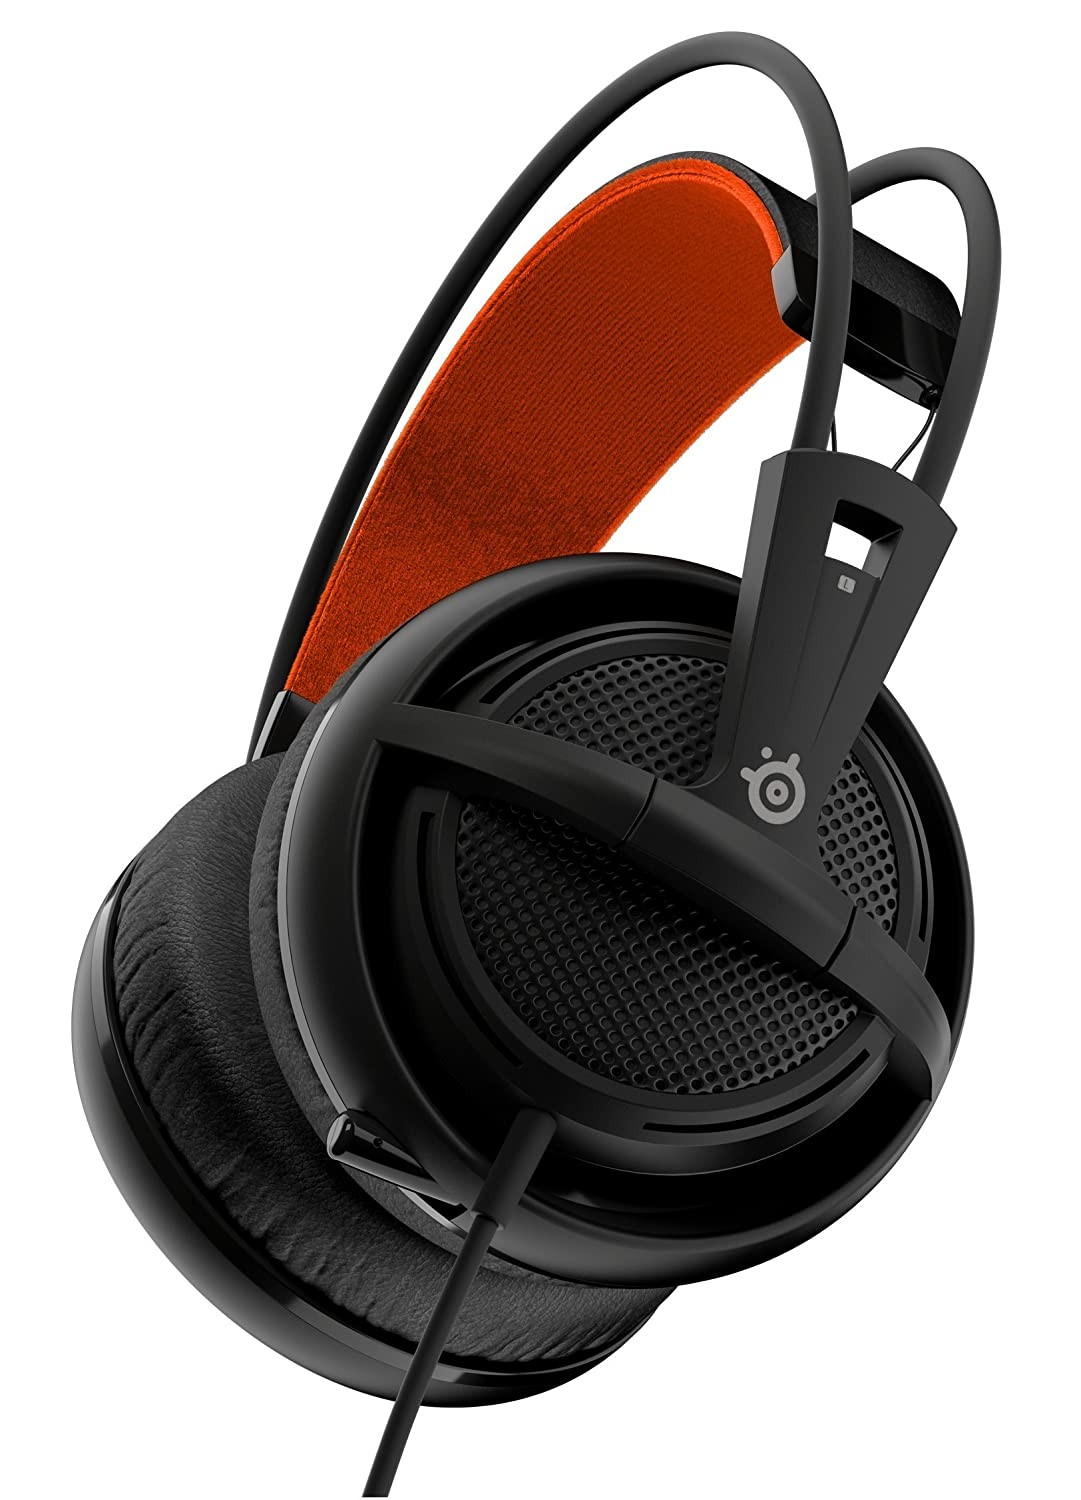 Steelseries Siberia 200 Gaming Headset Black Formerly Logitech G231 Prodigy V2 Computers Accessories